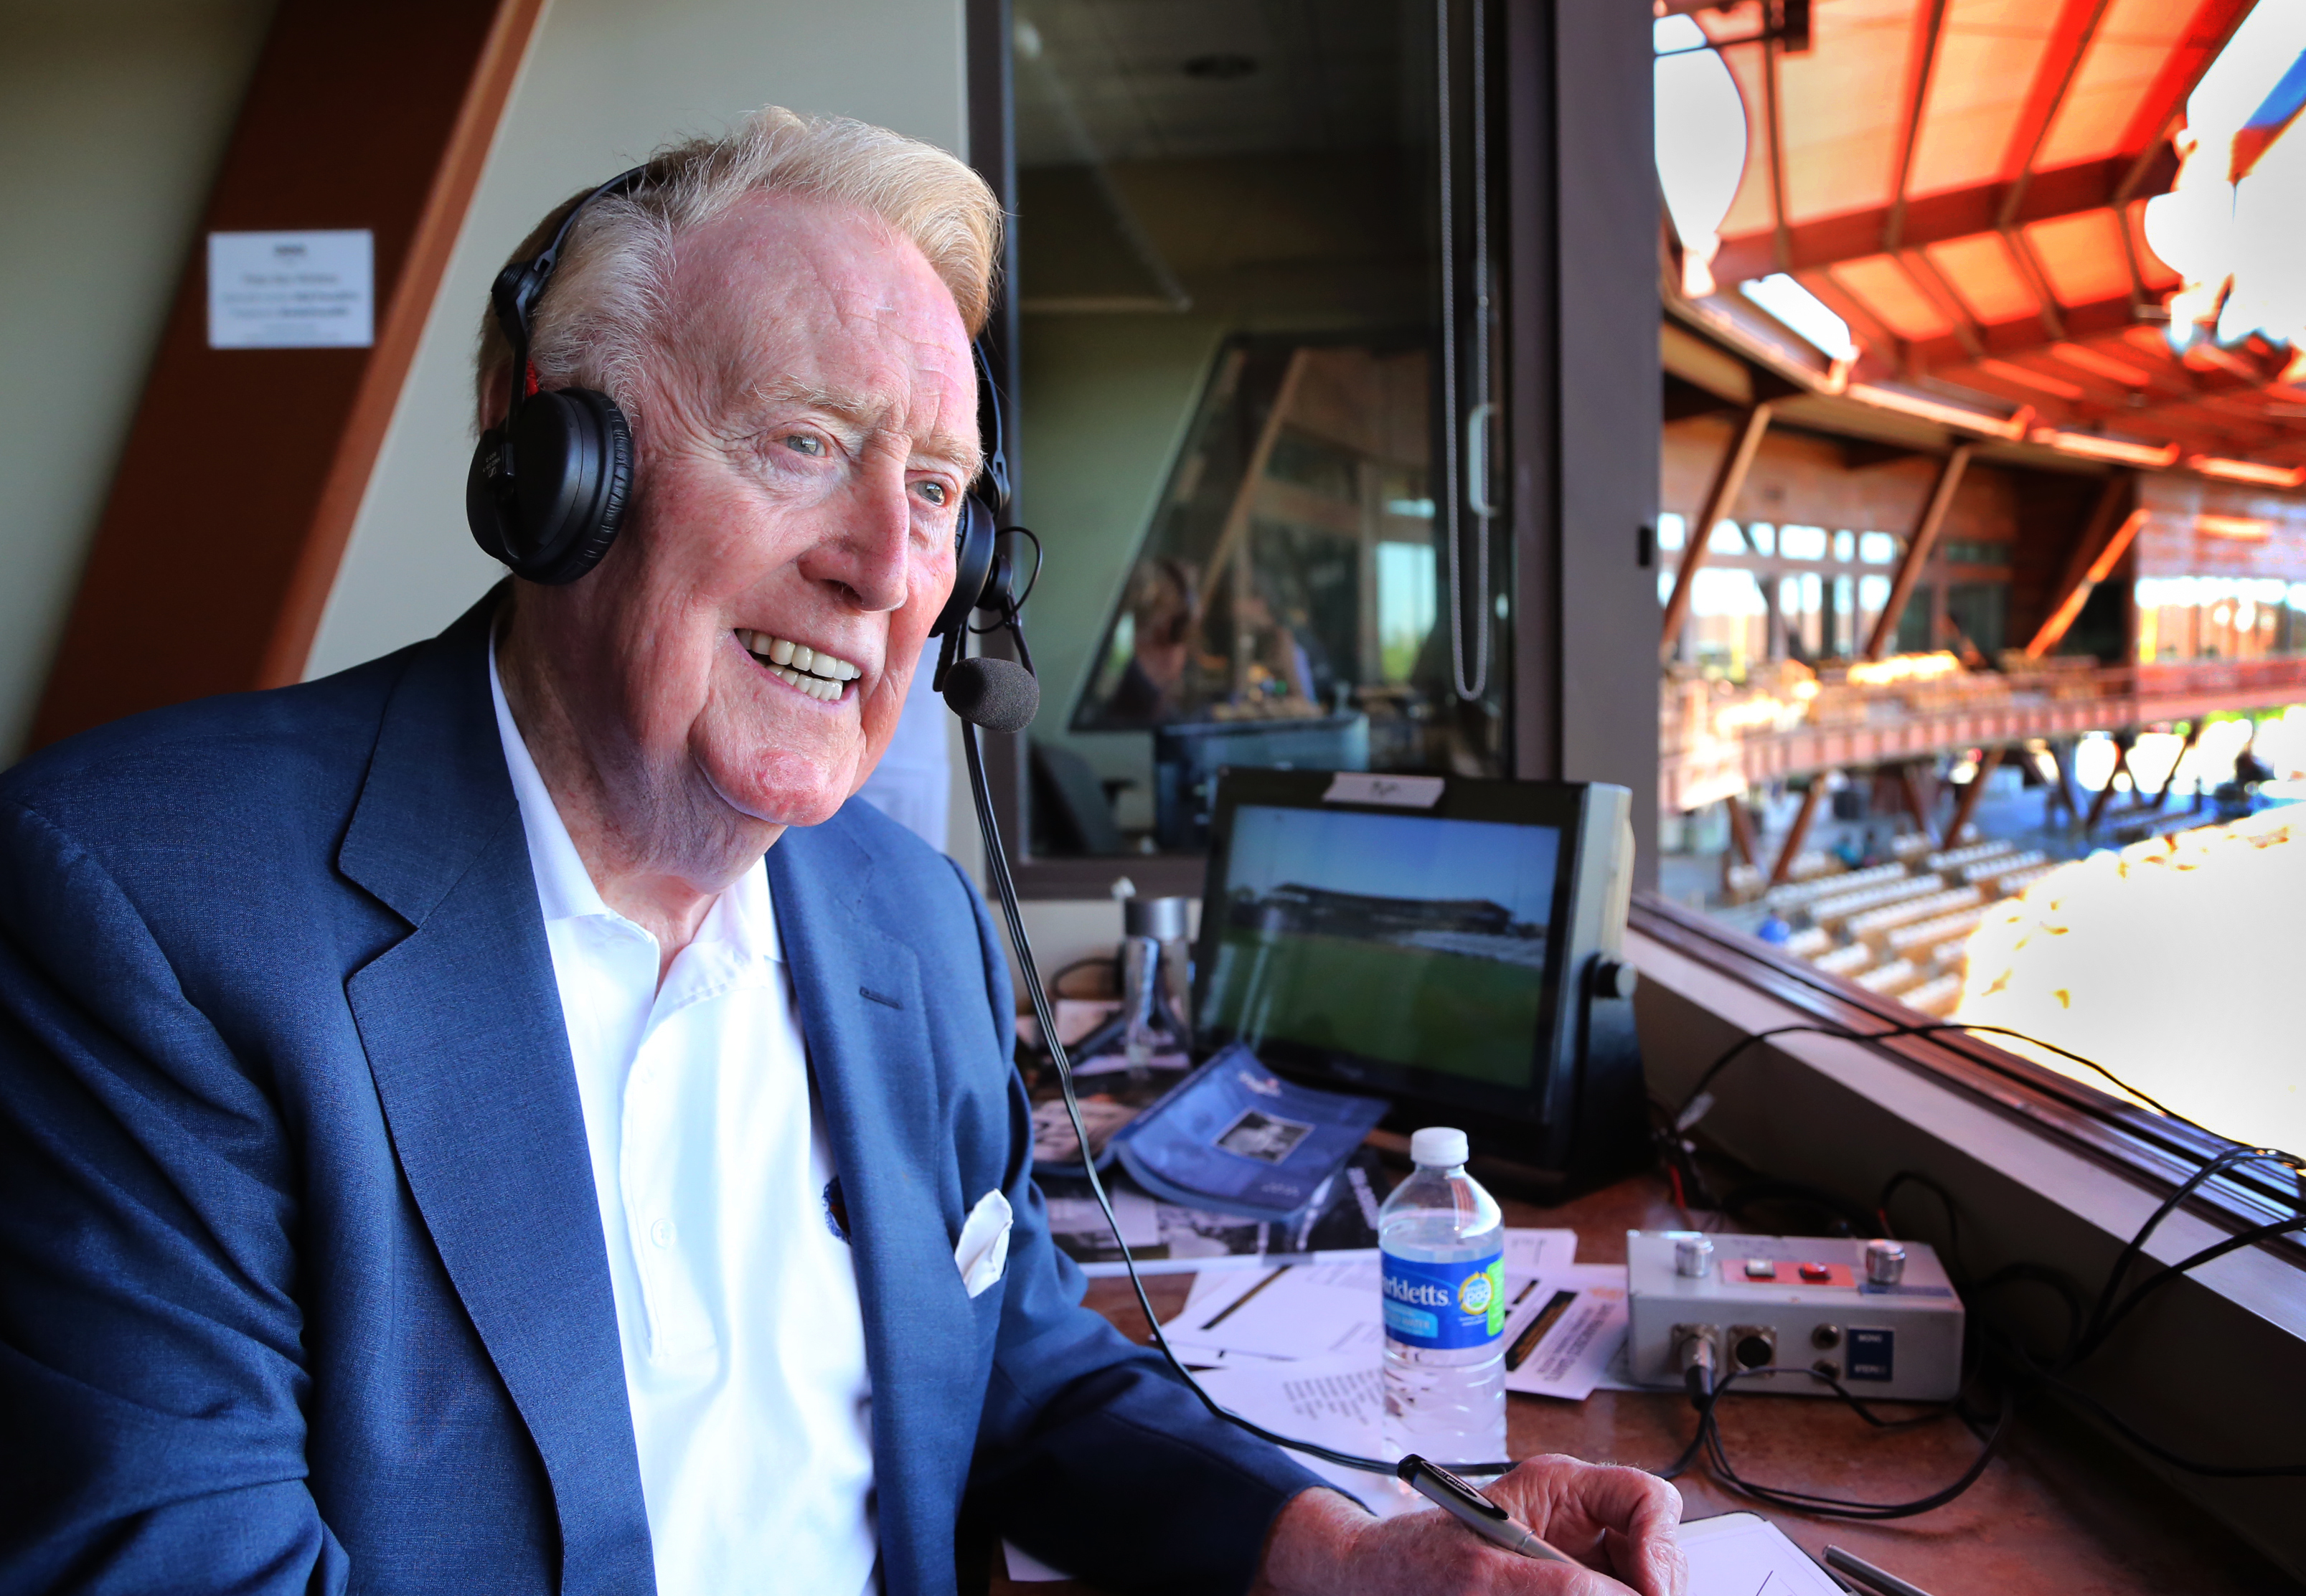 FILE - In this March 25, 2016, file photo, Los Angeles Dodgers broadcaster Vin Scully sits in the booth at the ballpark in Glendale, Ariz., for a spring training baseball game. Scully says the last ballgame he will broadcast is the Dodgers' regular-season